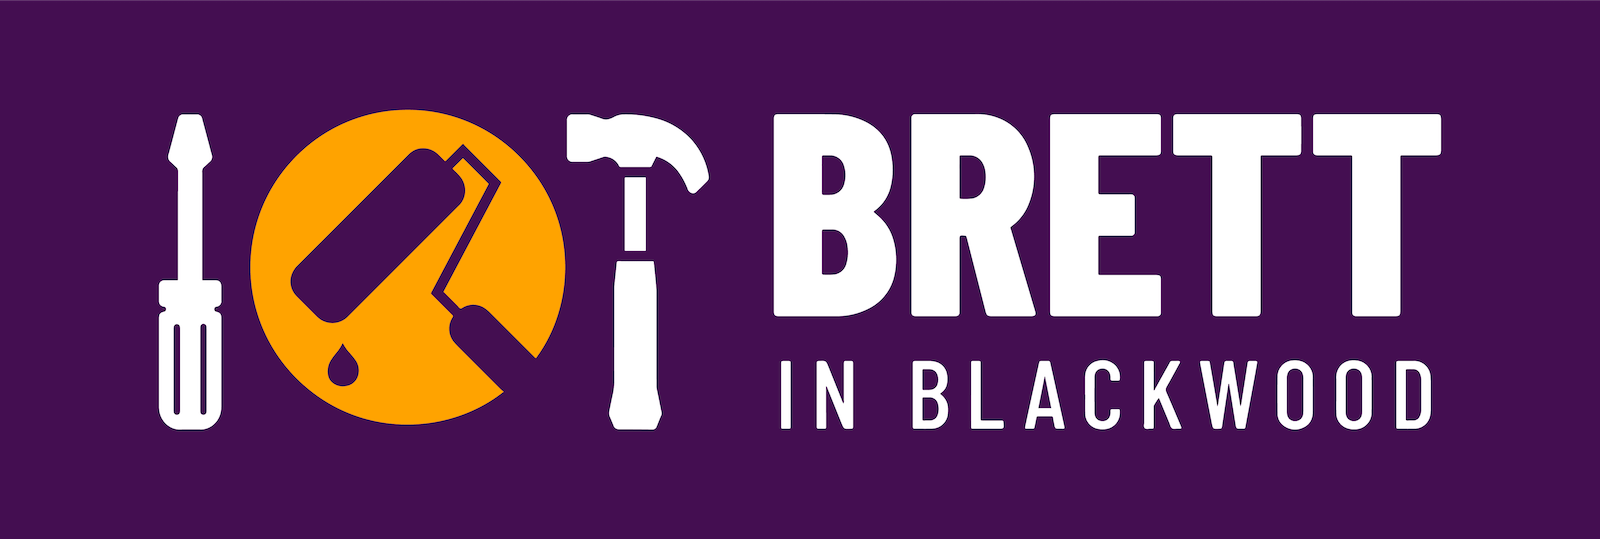 logo Brett in Blackwood